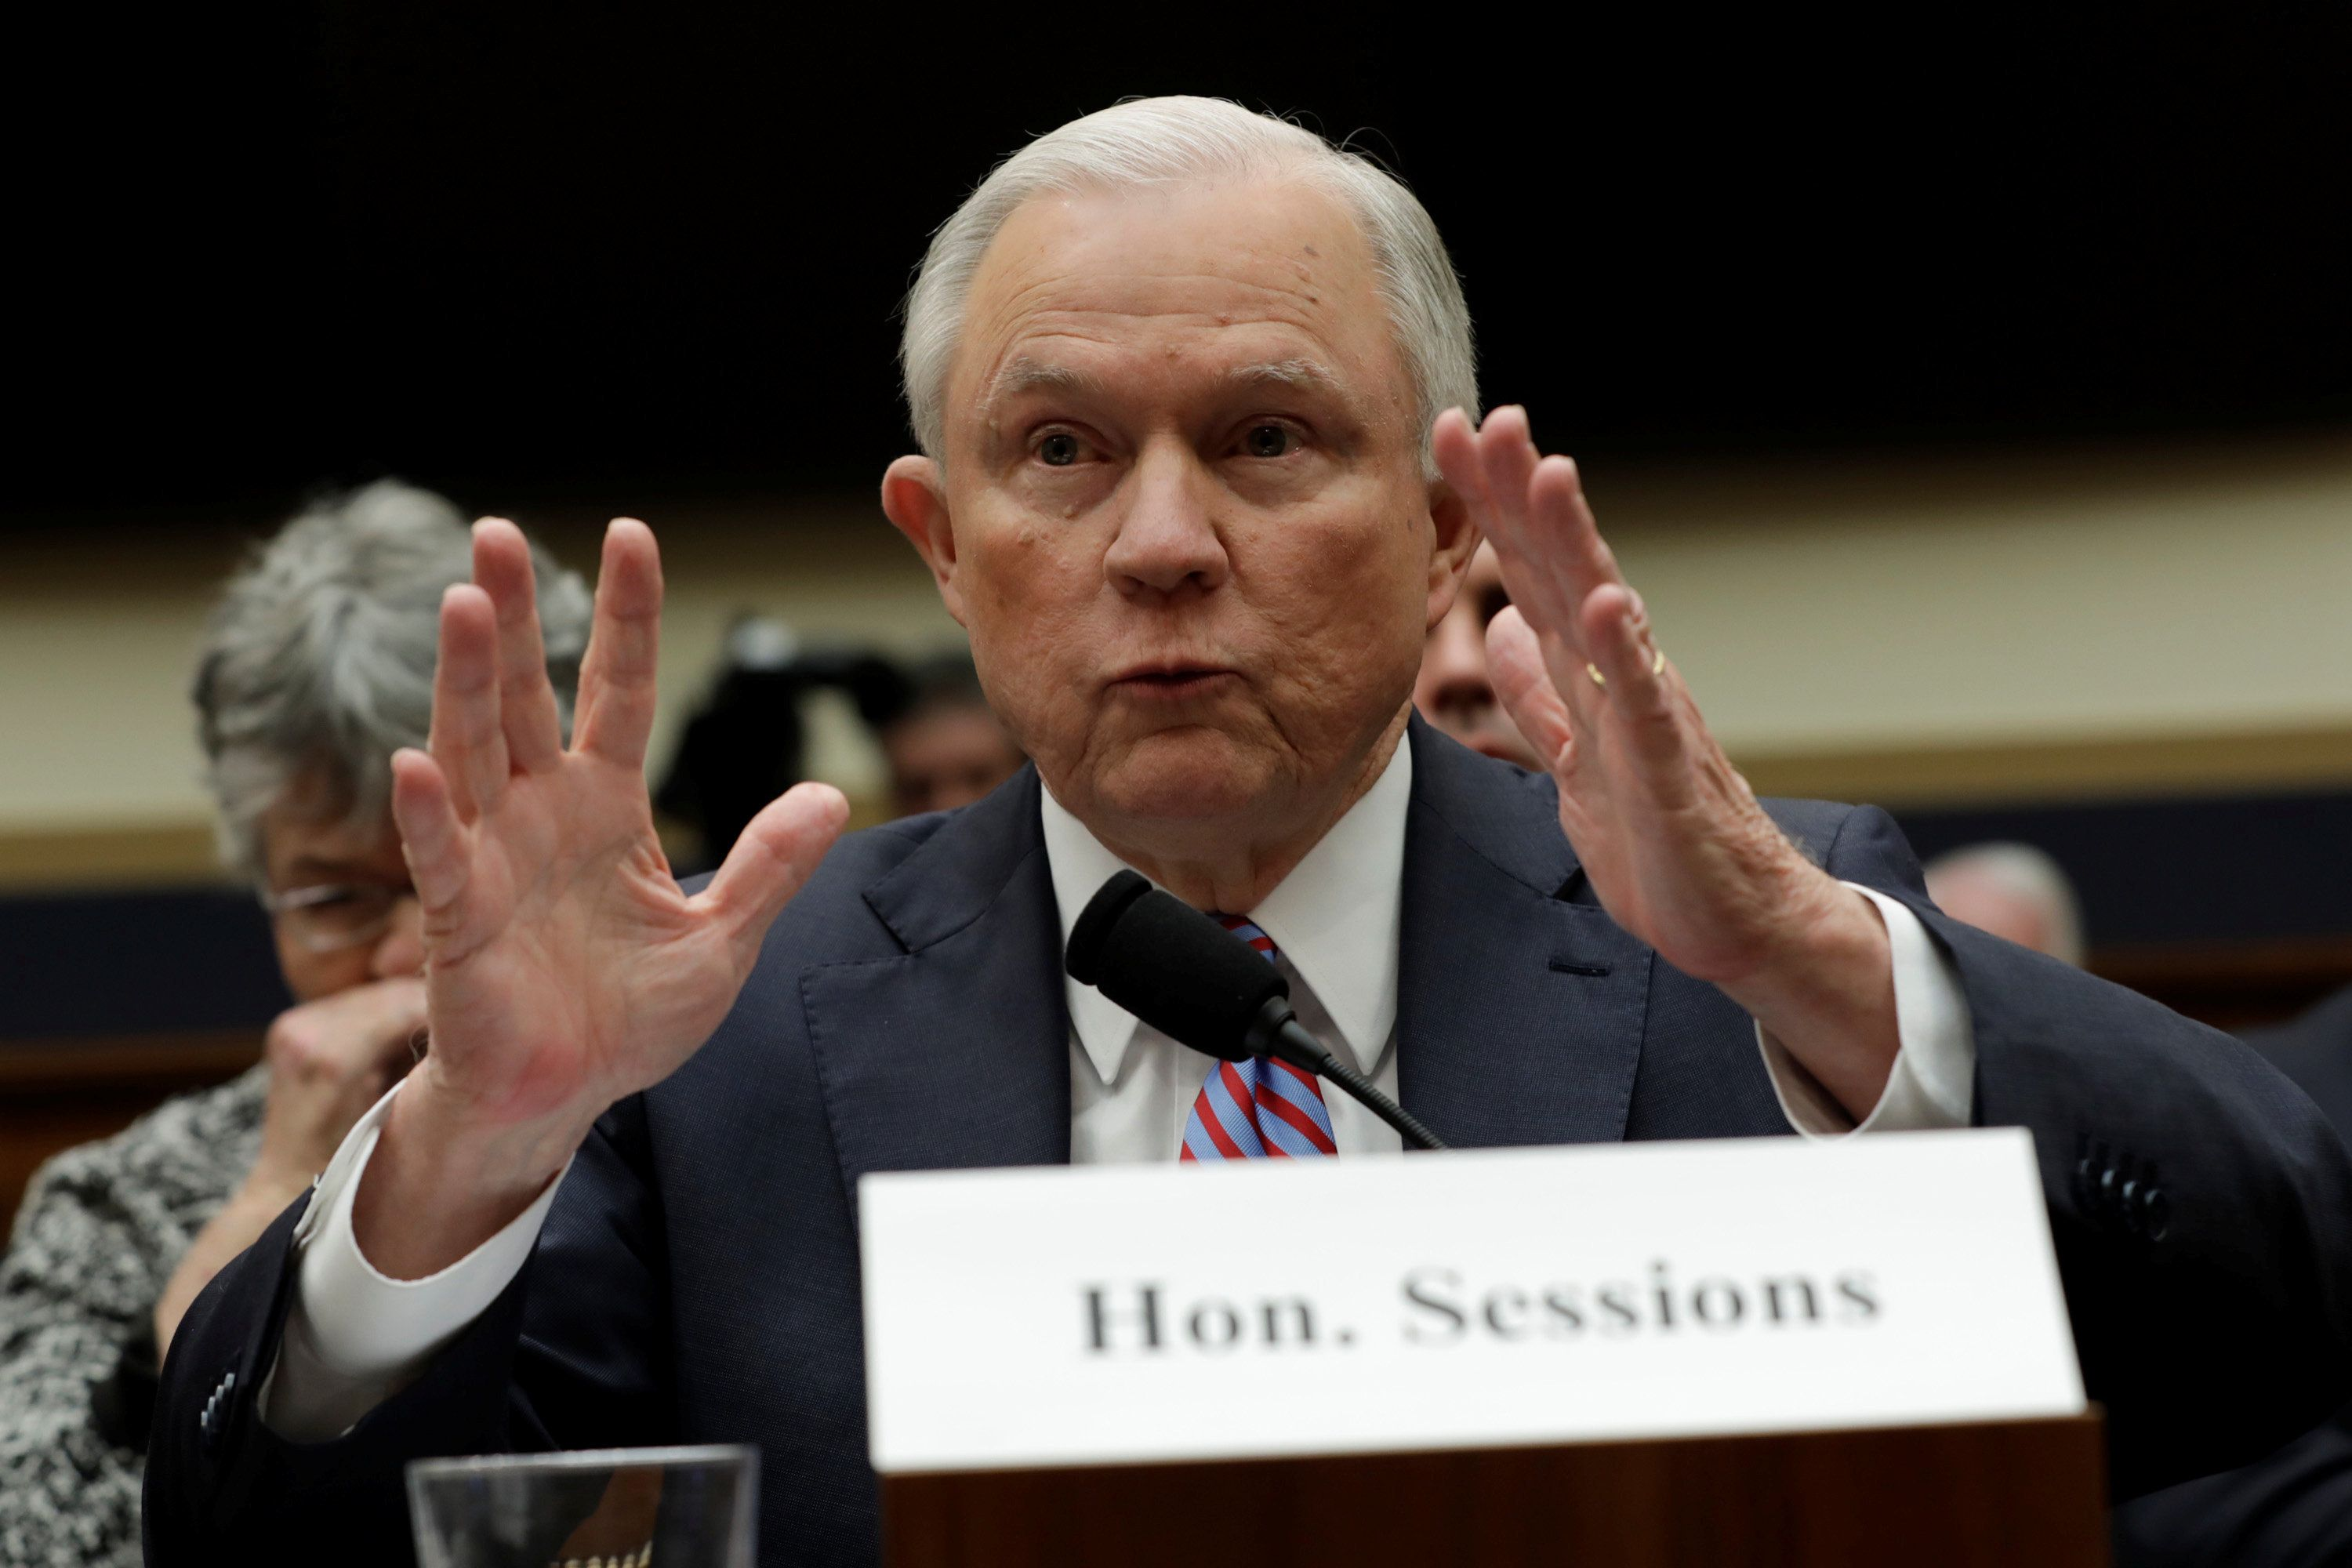 Sources contradict Sessions claim he opposed Russian meeting